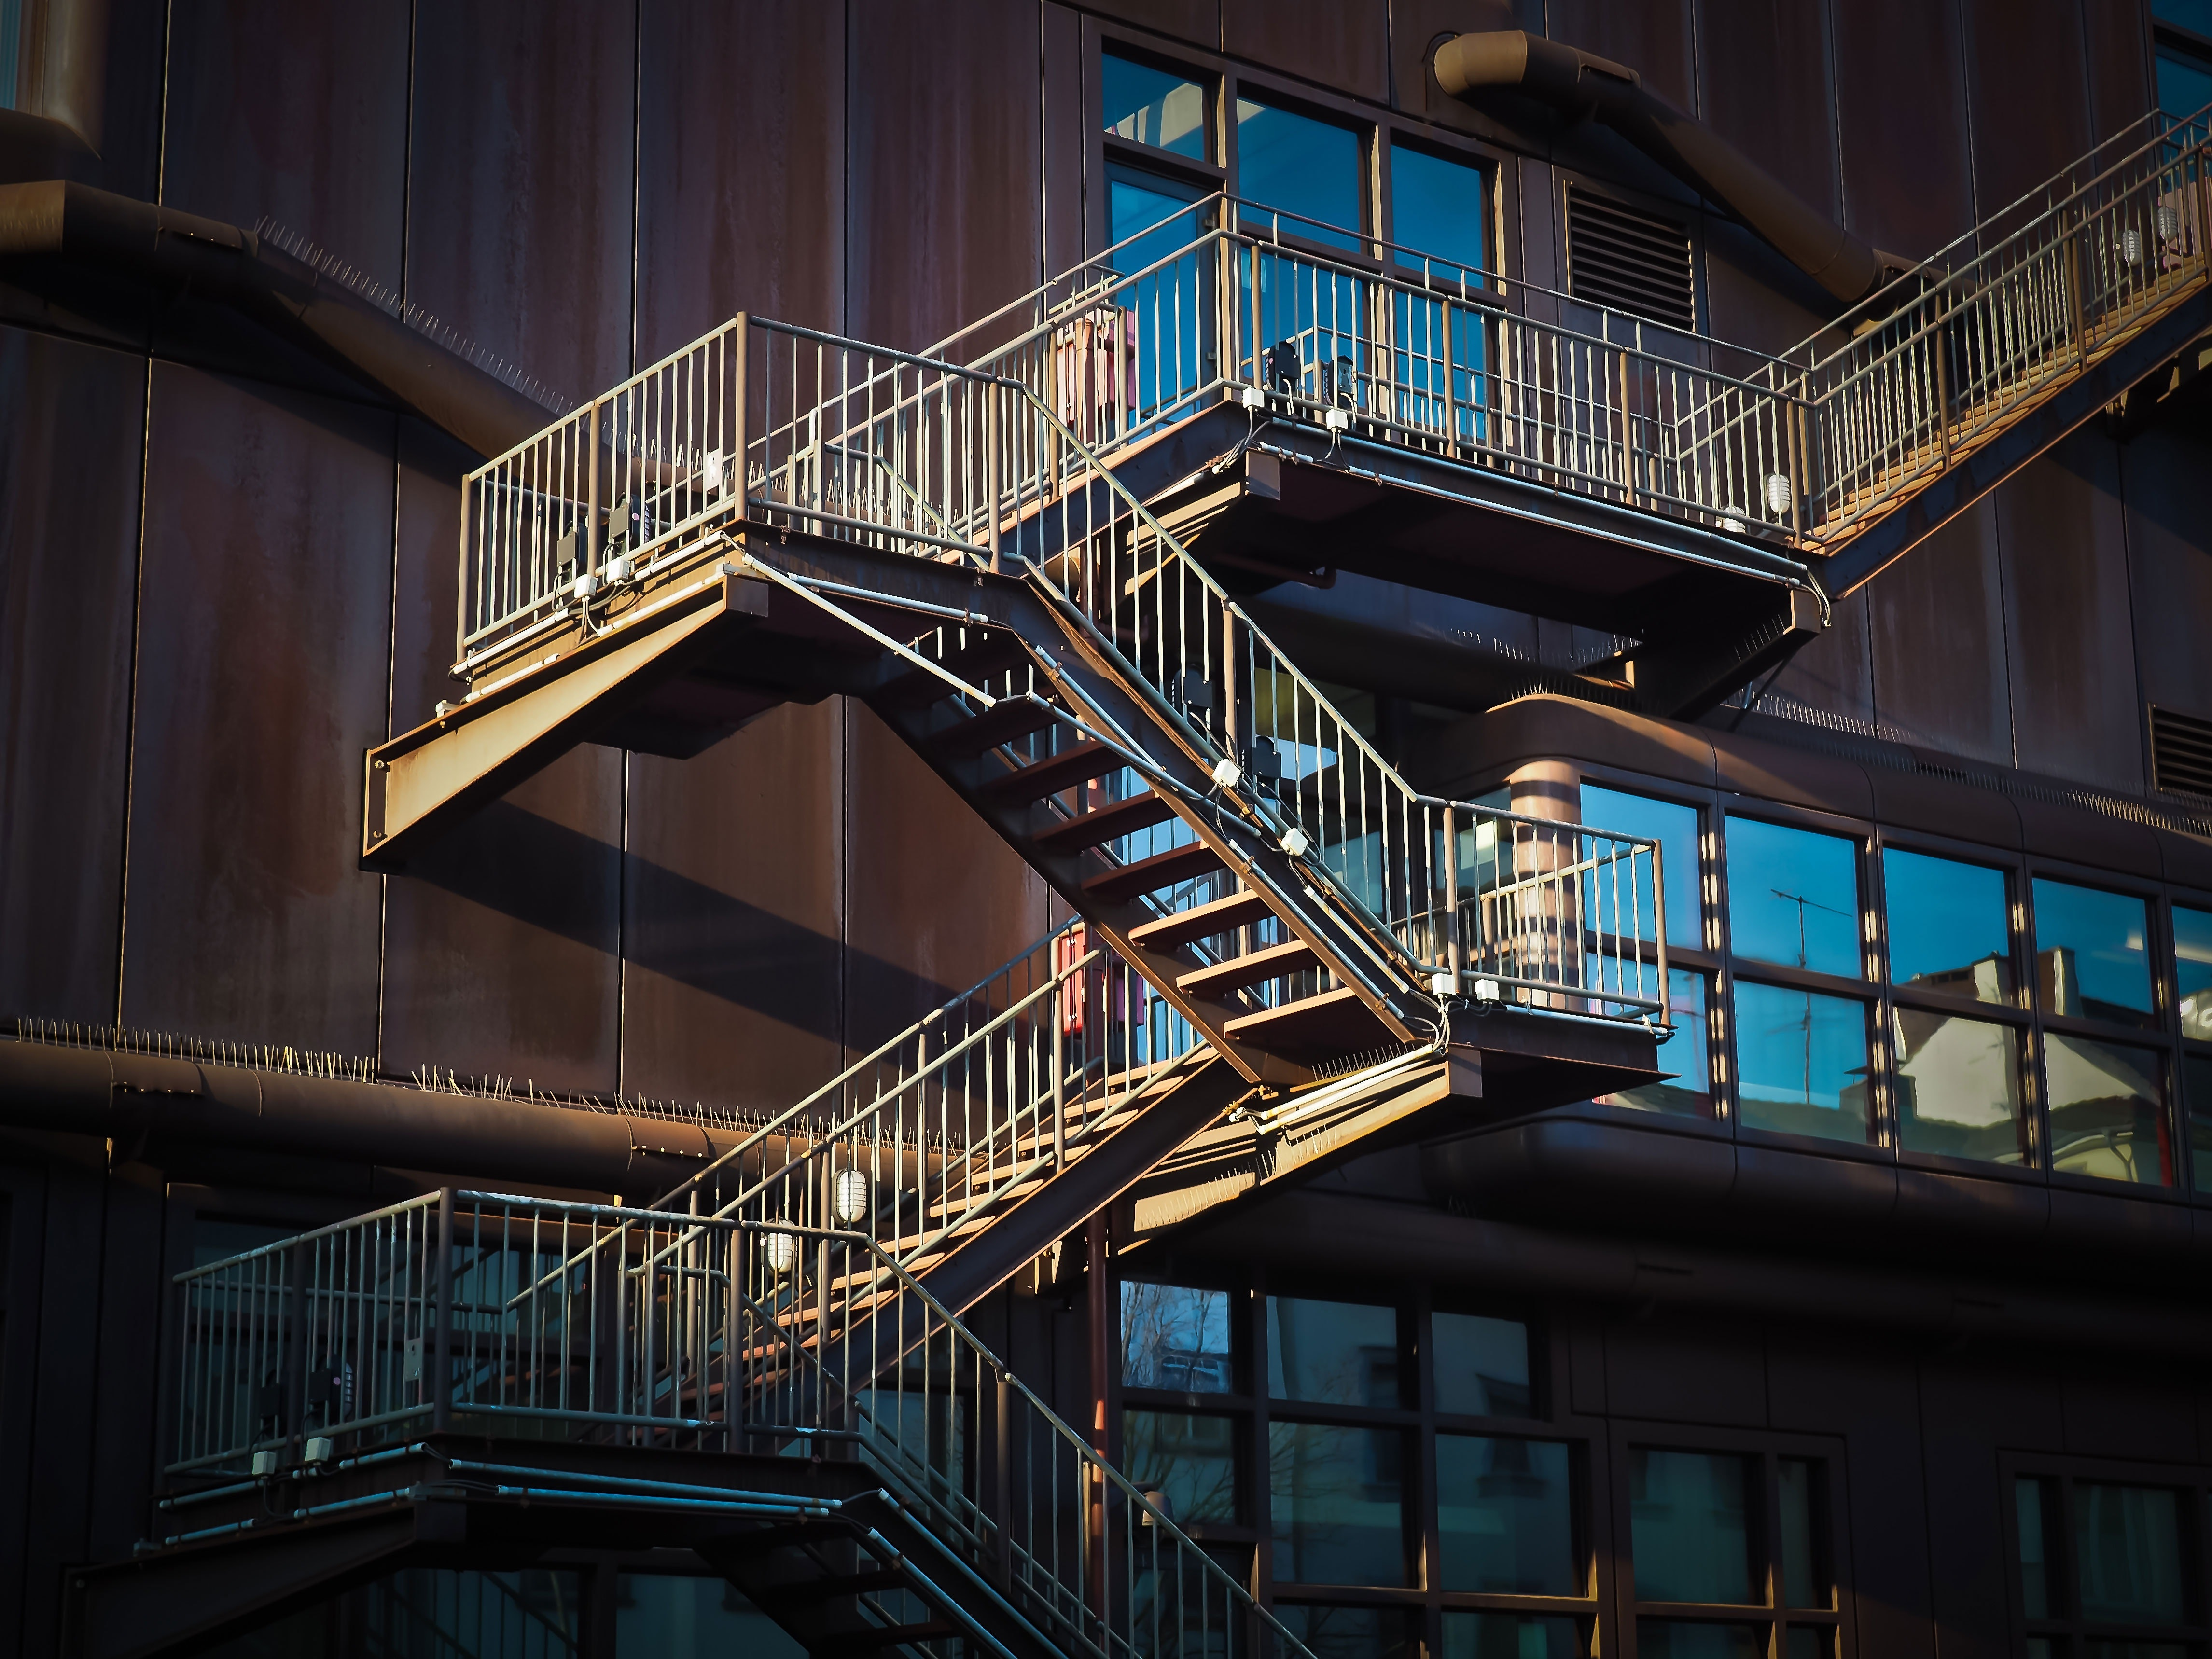 Low Angle View of Spiral Stairs, Rusty, Wood, Water, Urban, HQ Photo